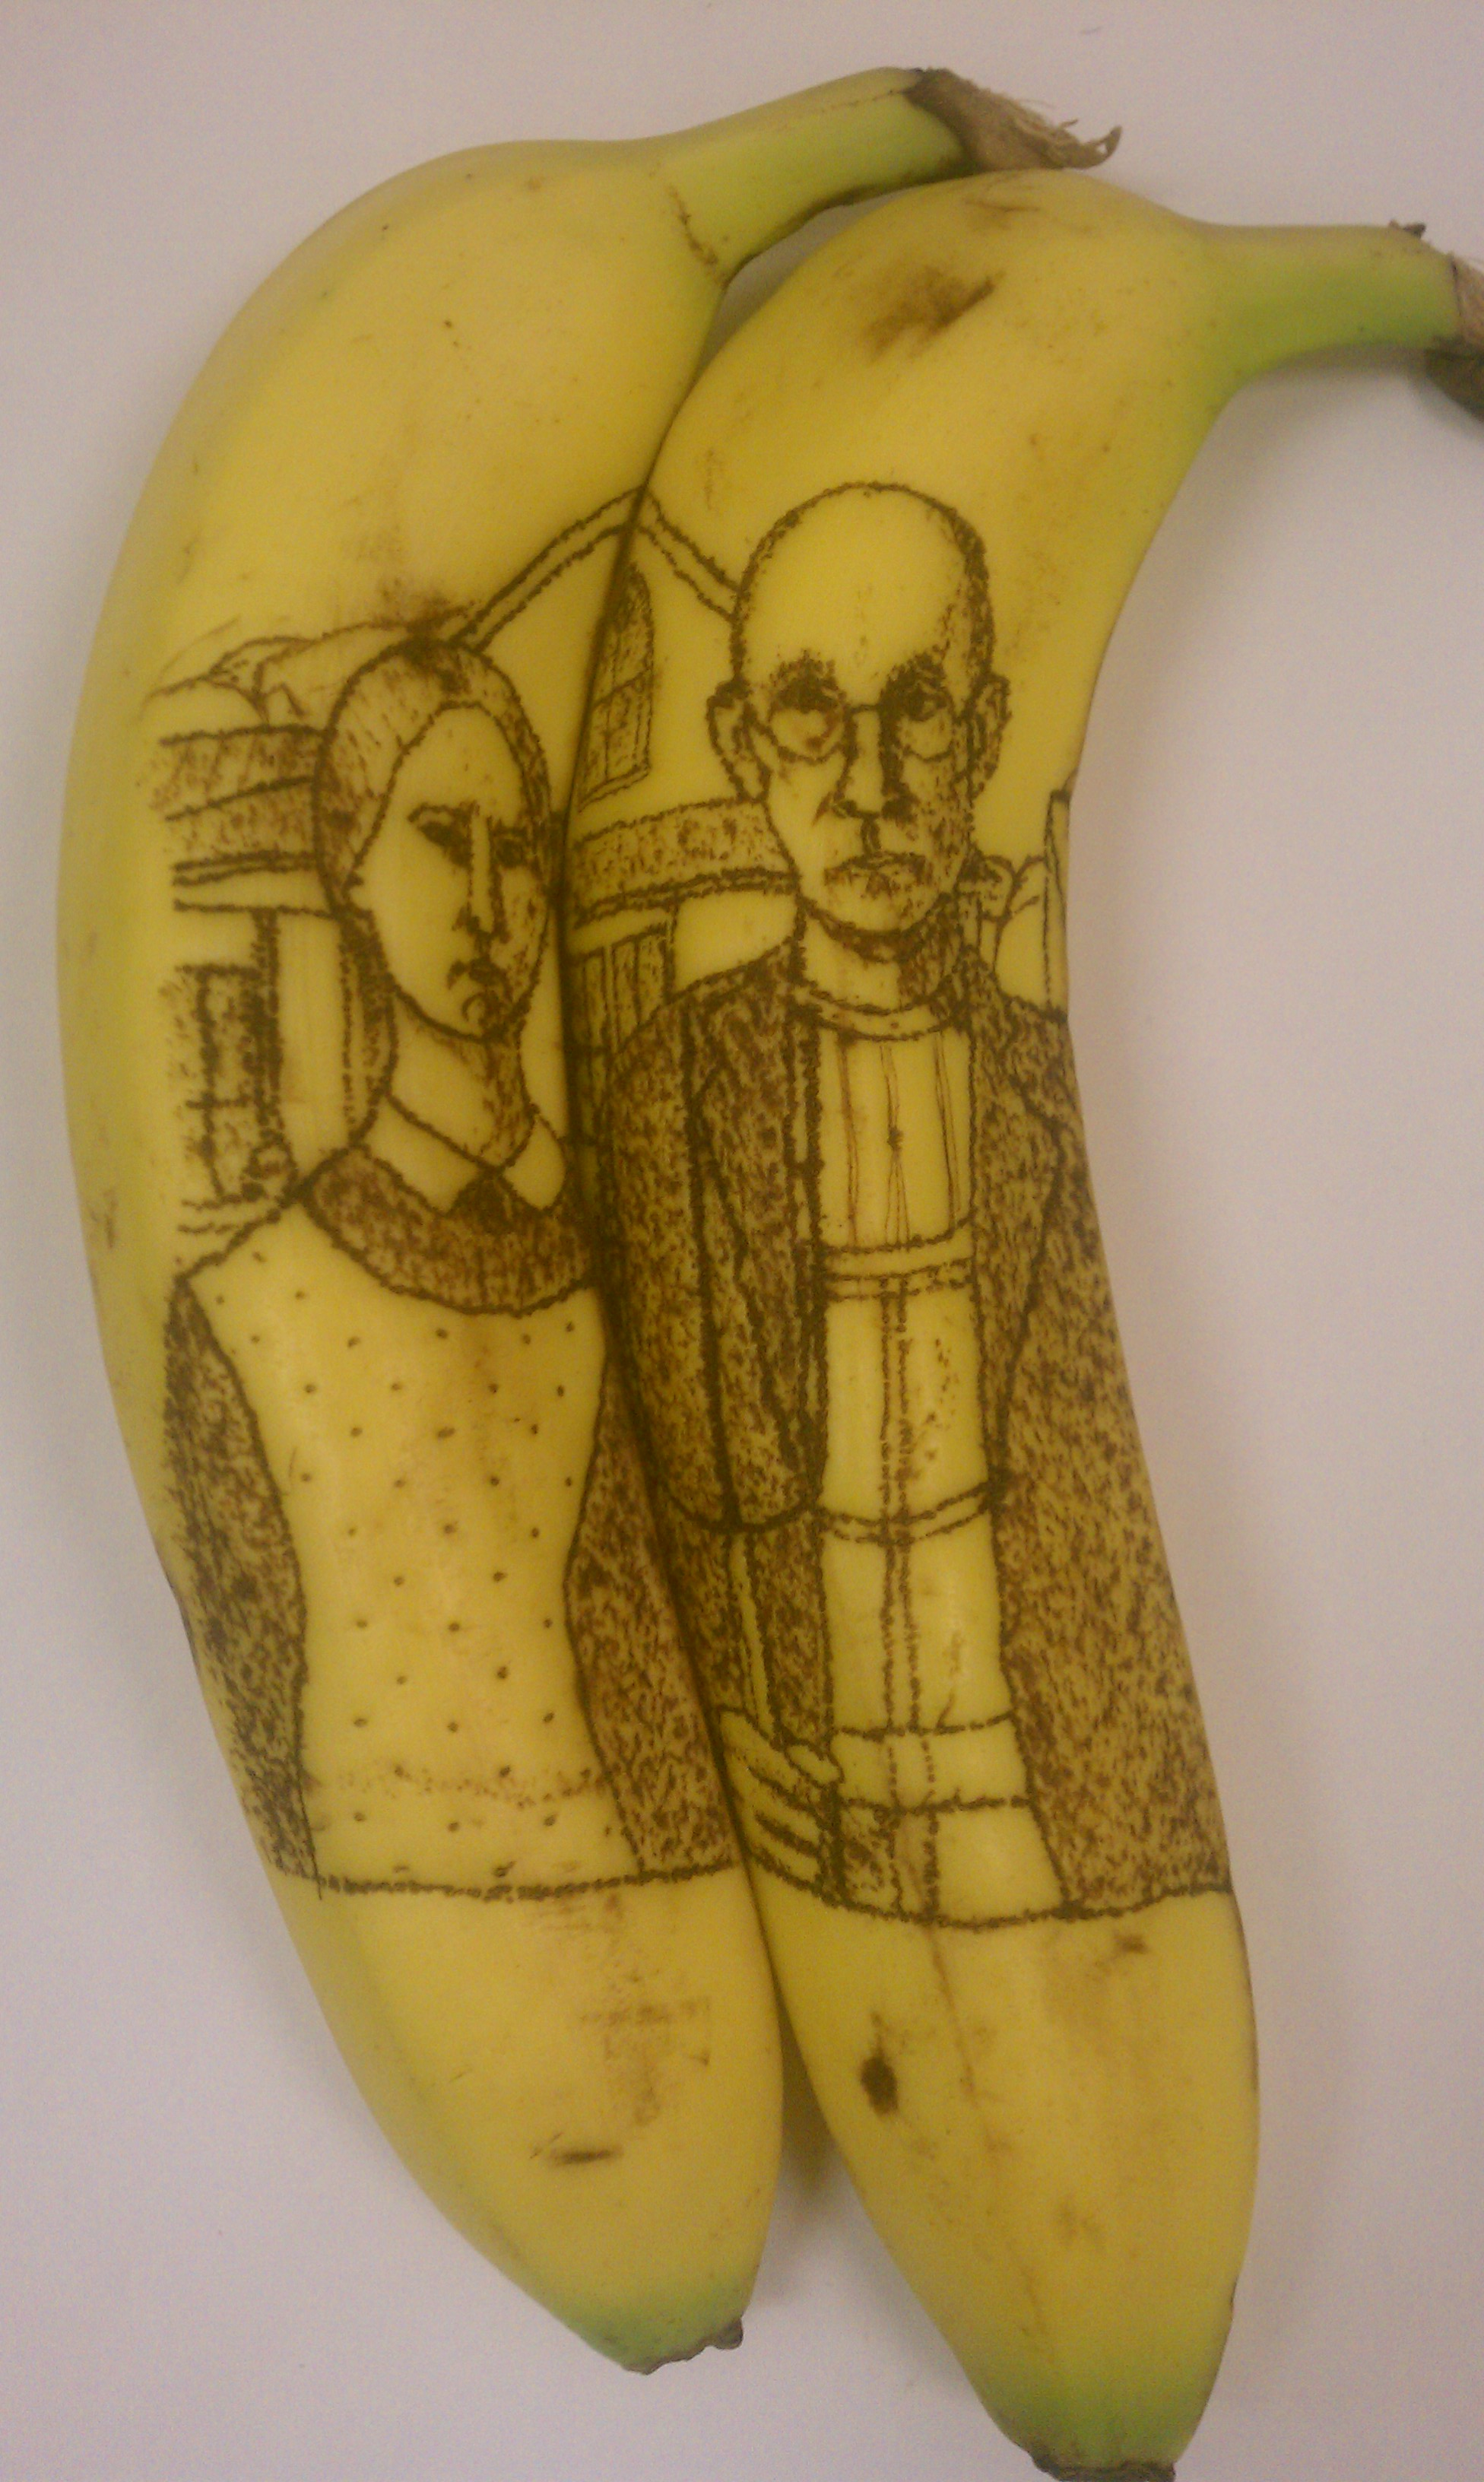 Picture of How to Make Banana Oxidation Art/ How to Tattoo a Banana